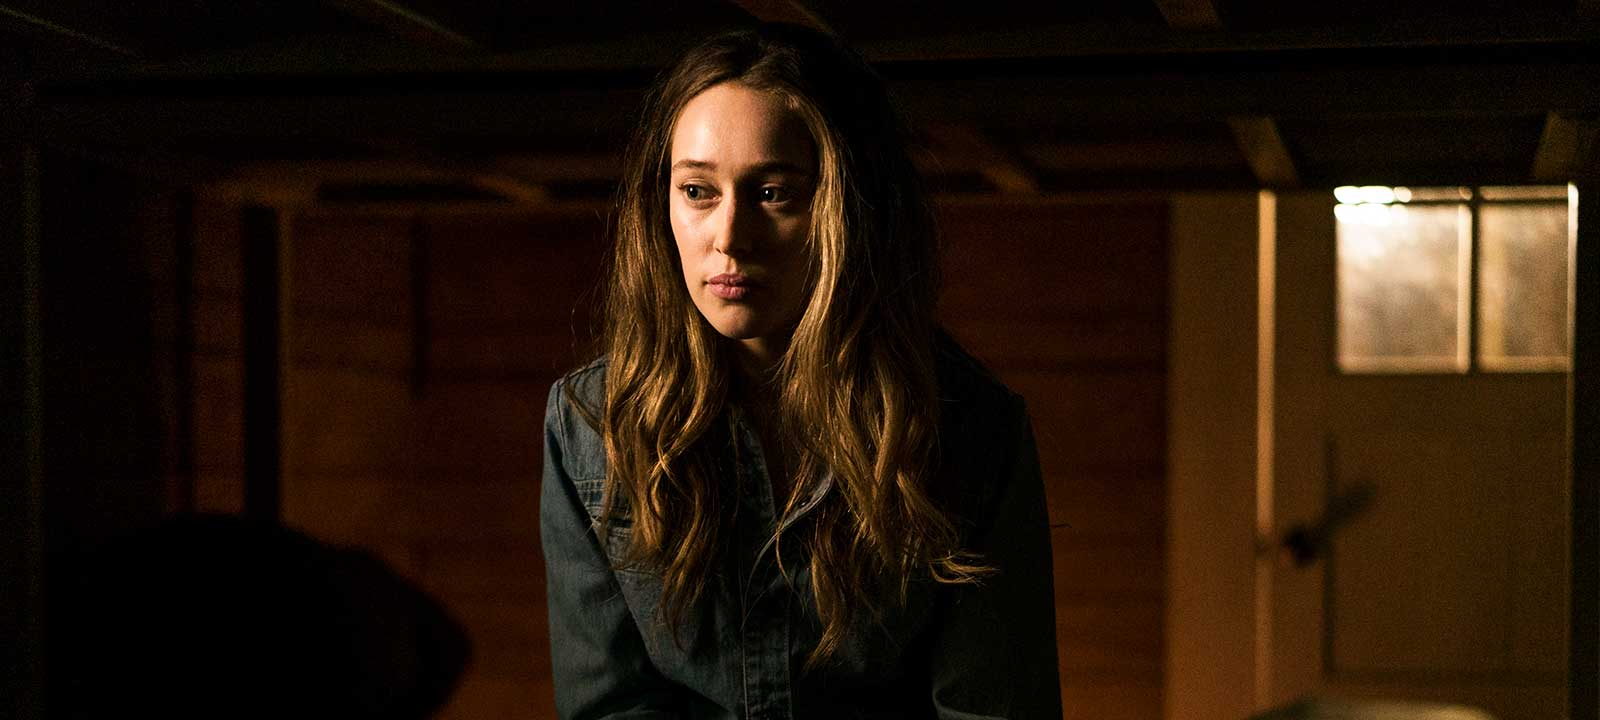 fear-the-walking-dead-episode-306-alicia-debnam-carey-800×600-interview